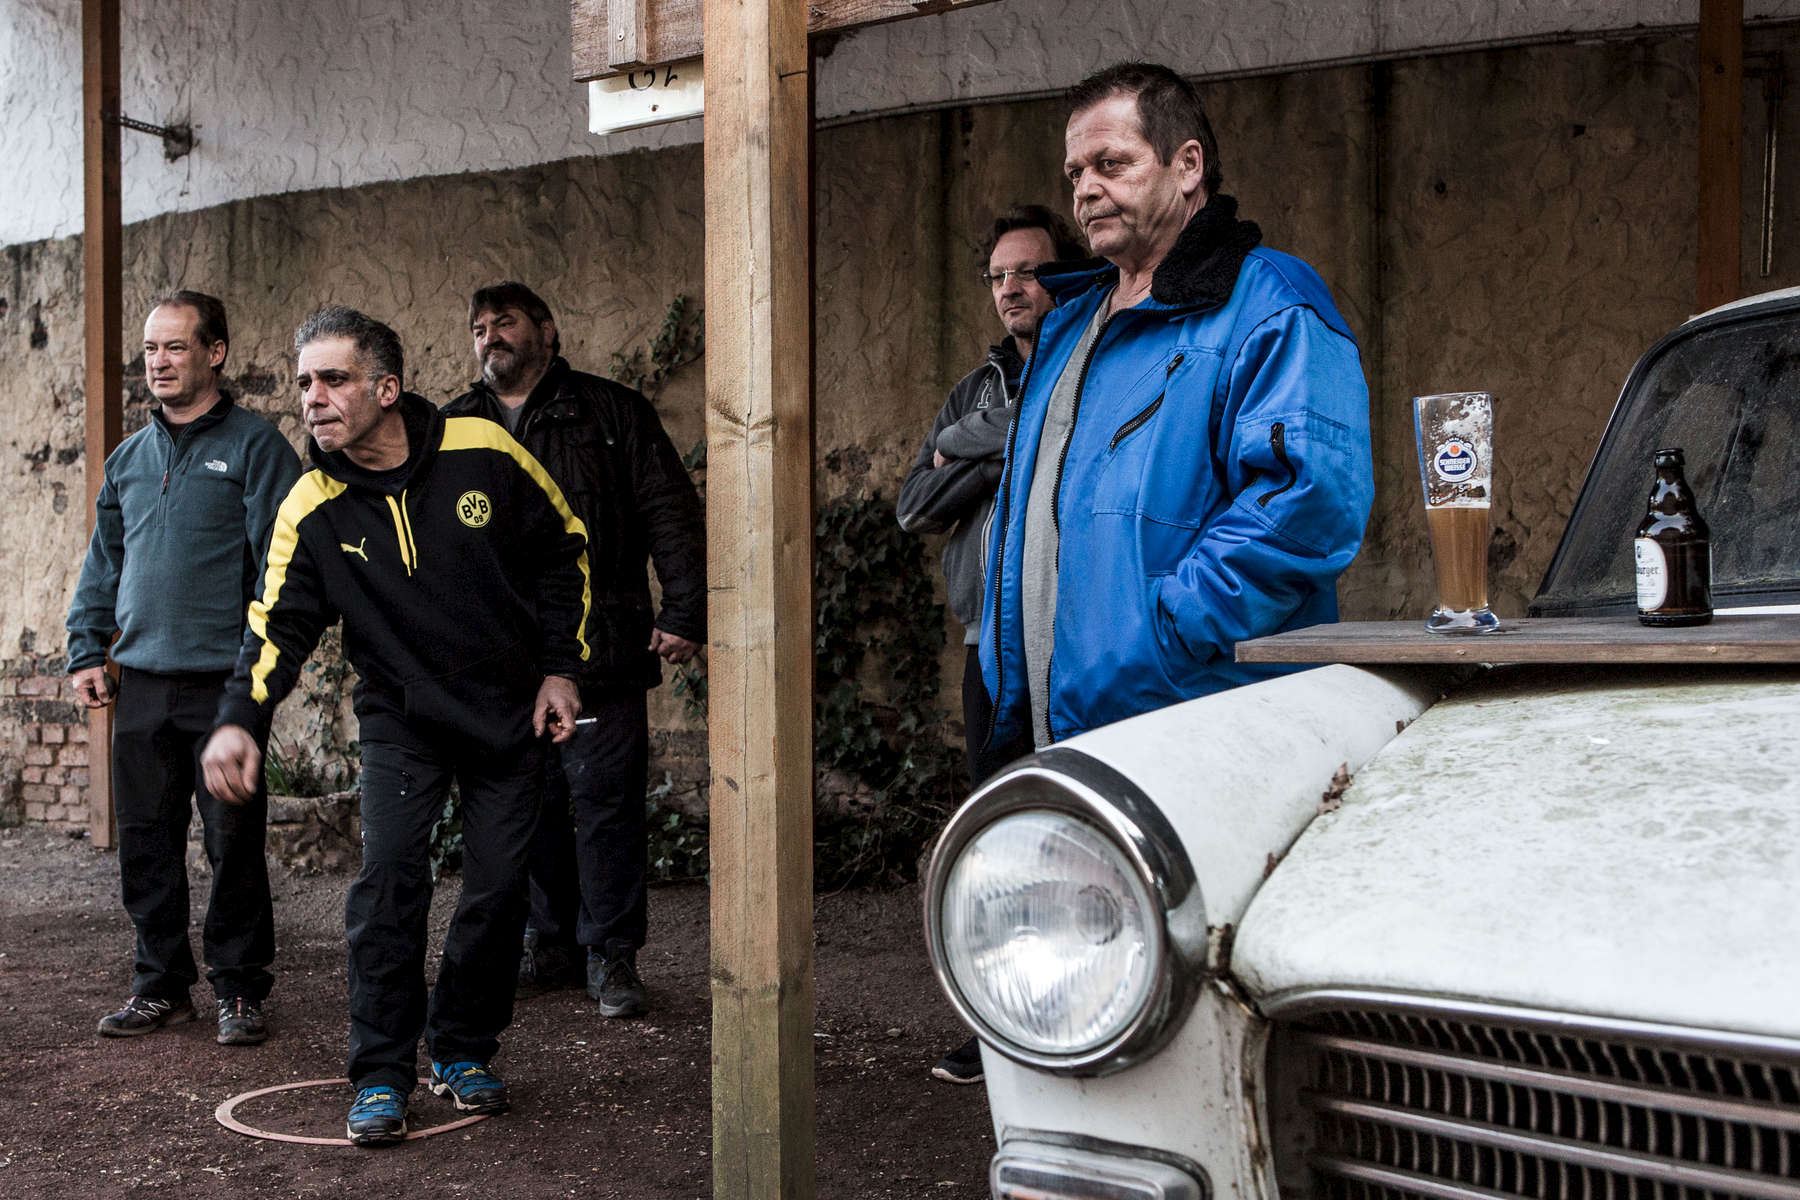 Men in the German Saar region are standing next to an old car and are playing the game Petanque